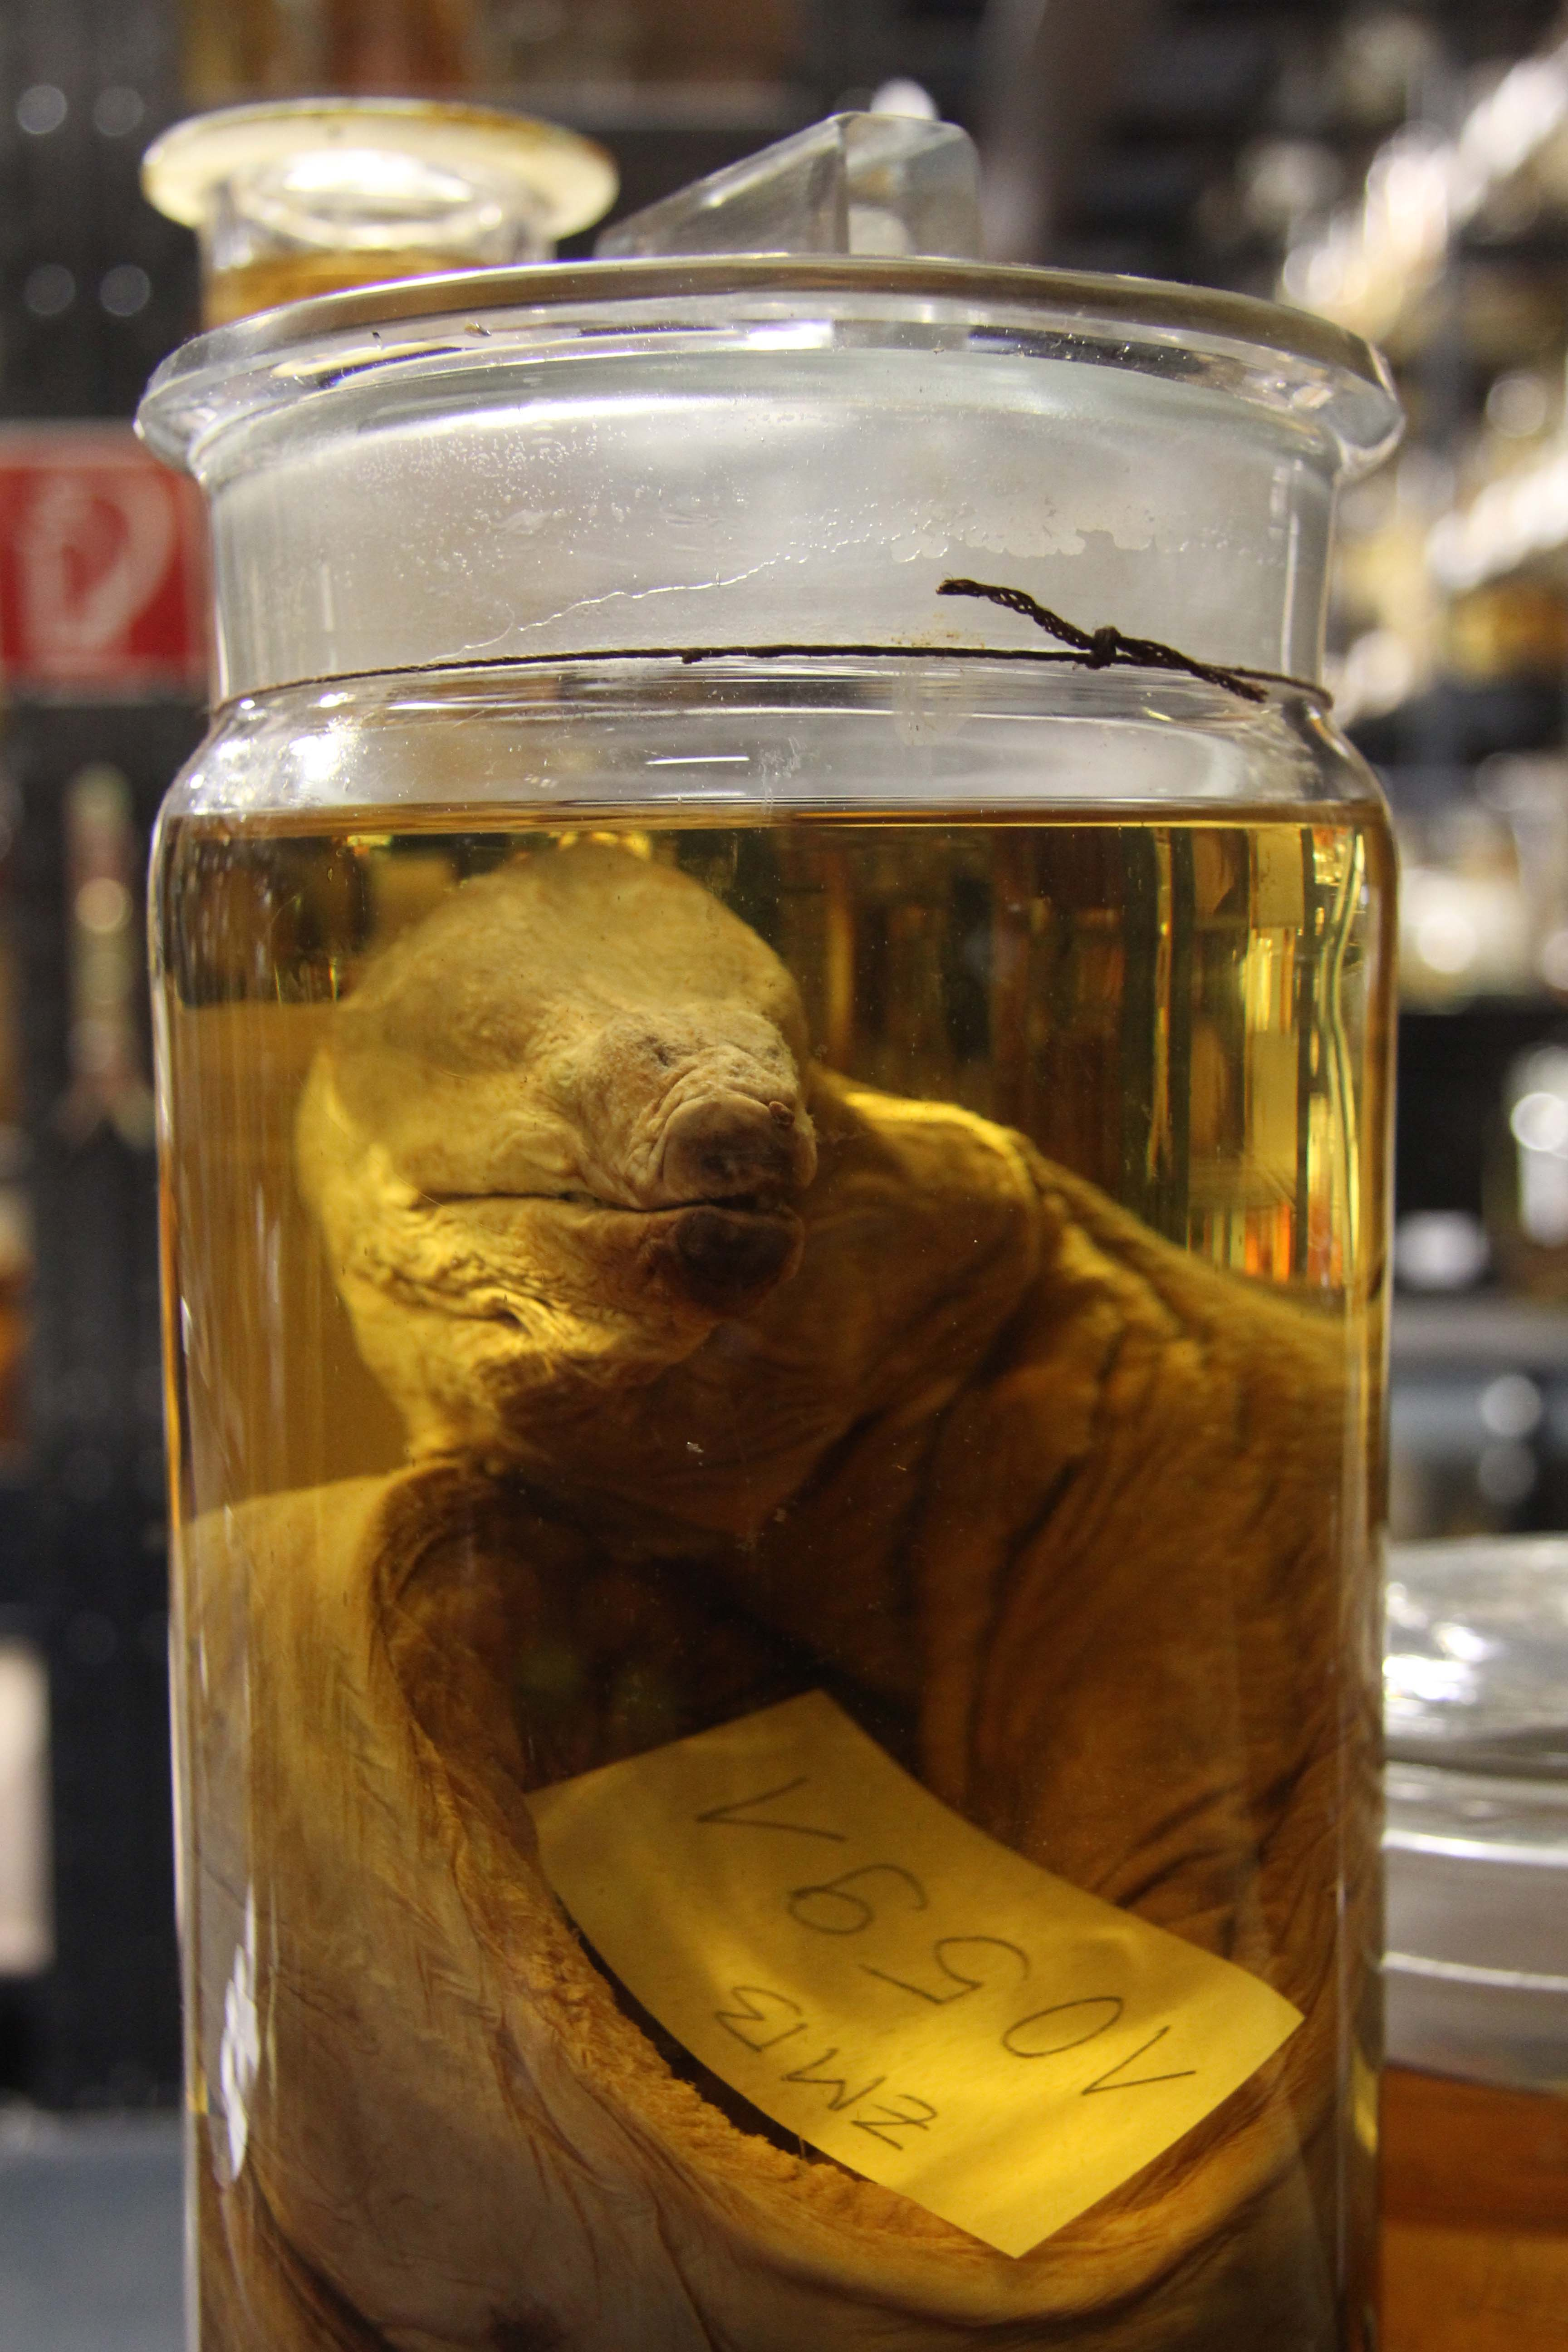 A sample in The Wet Collections at the Museum für Naturkunde (Natural History Museum) in Berlin